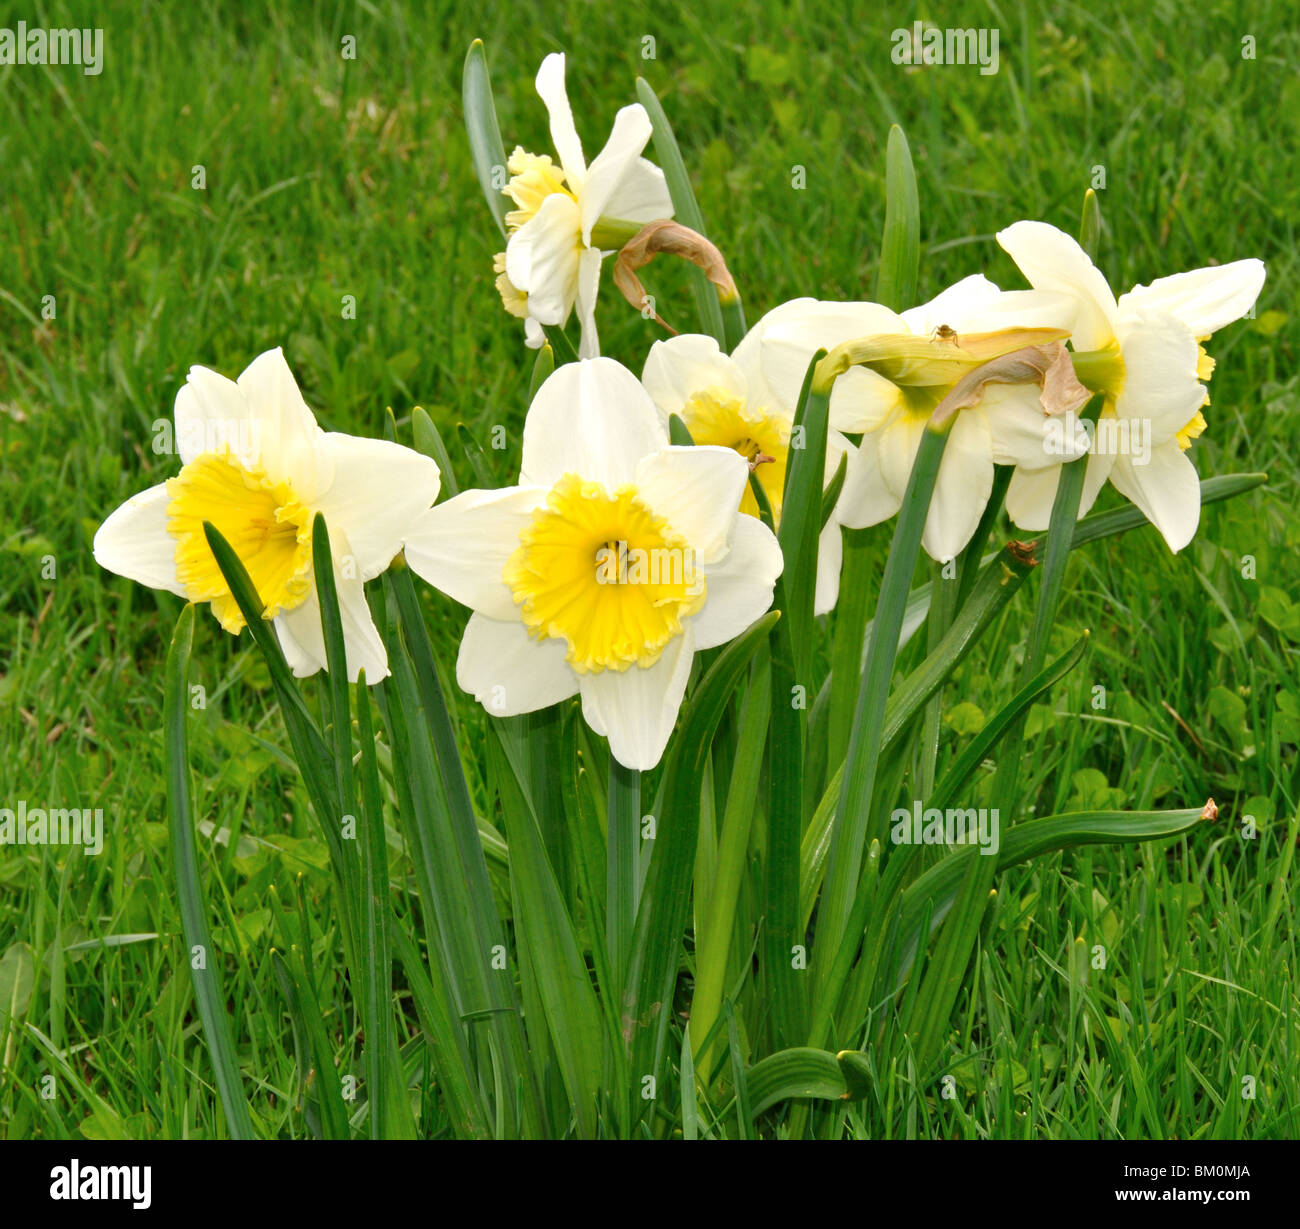 Daffodils in a cluster facing different directions - Stock Image